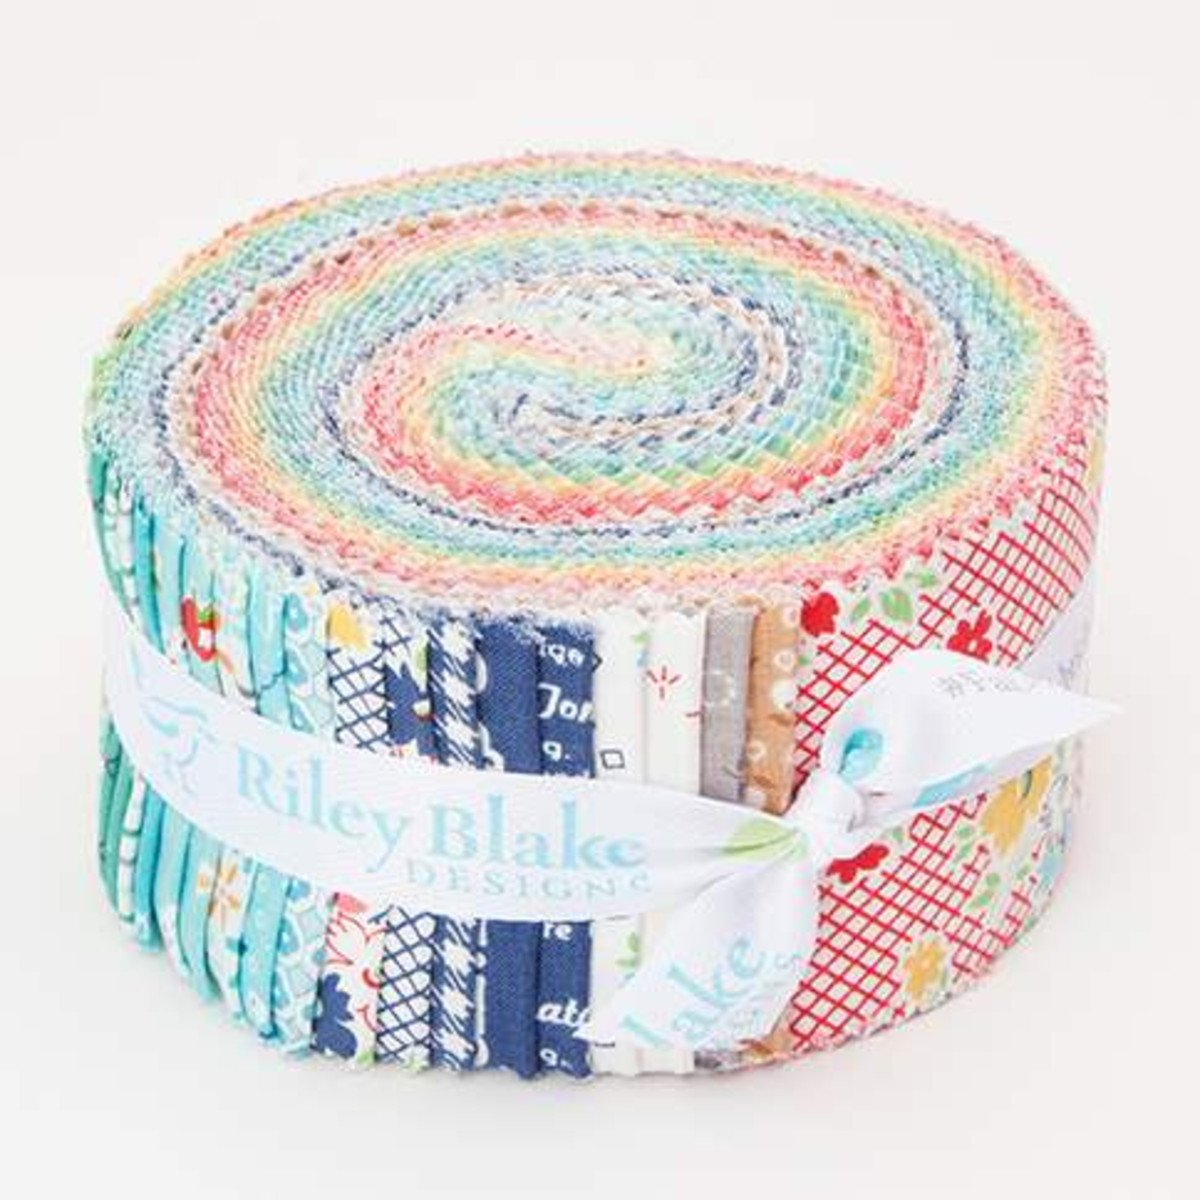 Sunnyside Up Jelly Roll by Corey Yoder | Moda Fabrics